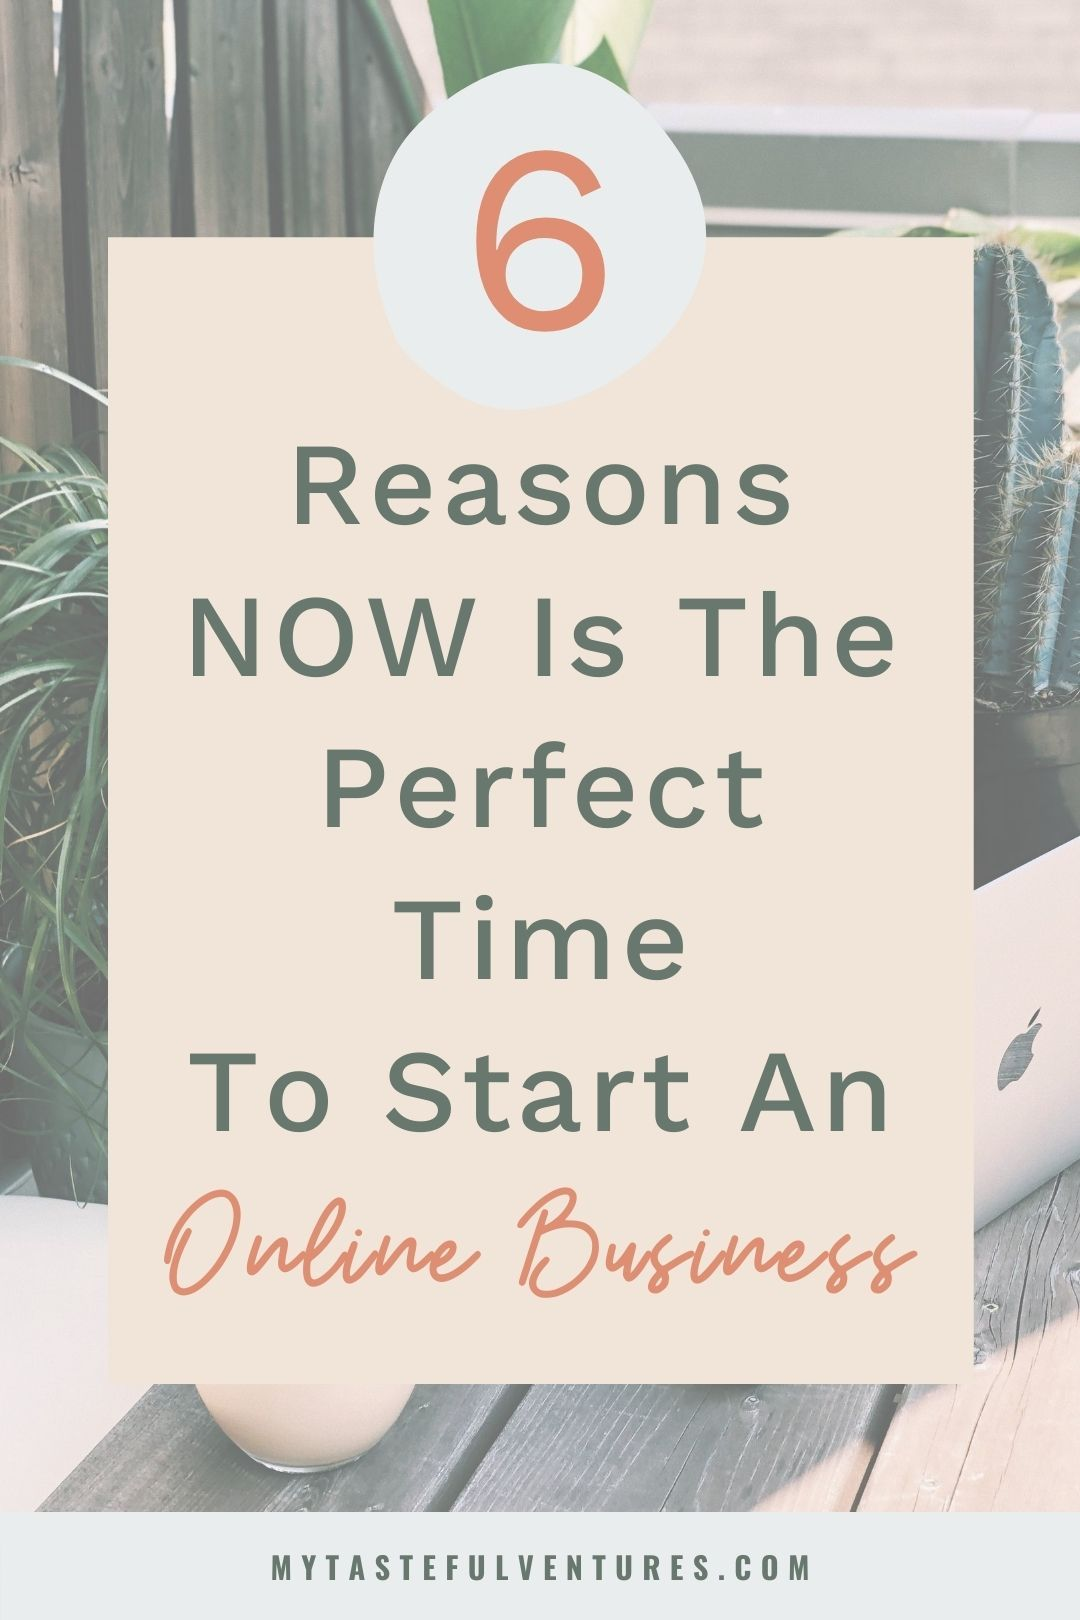 6 Reasons Why Now Is The Perfect Time To Start An Online